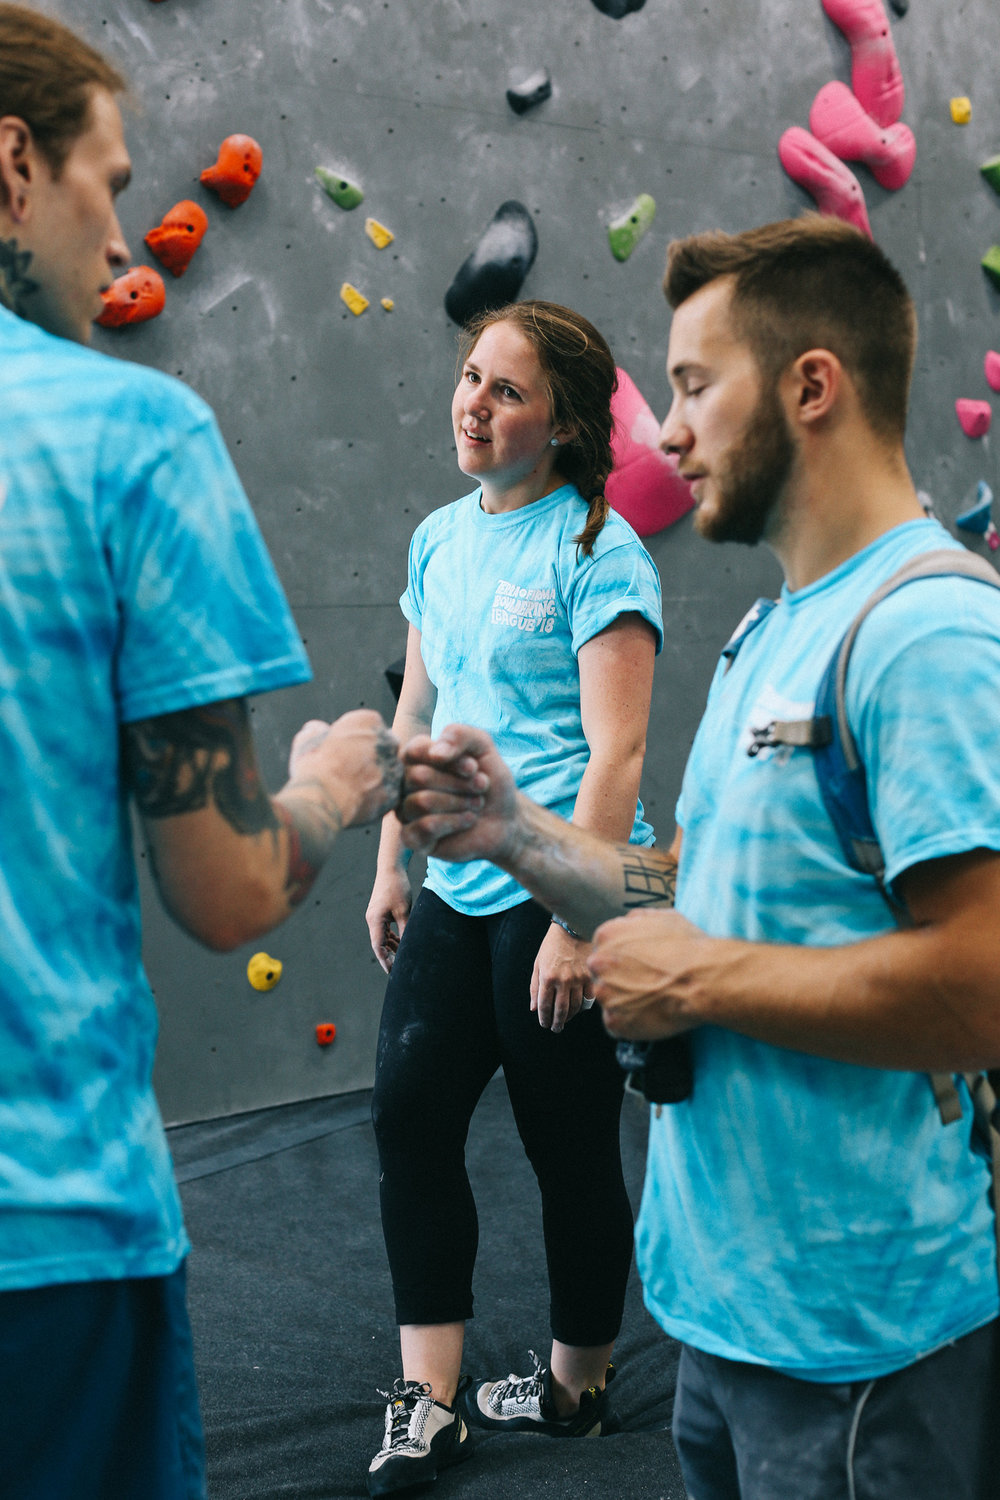 Group & Corporate Events at Terra Firma Bouldering Co.